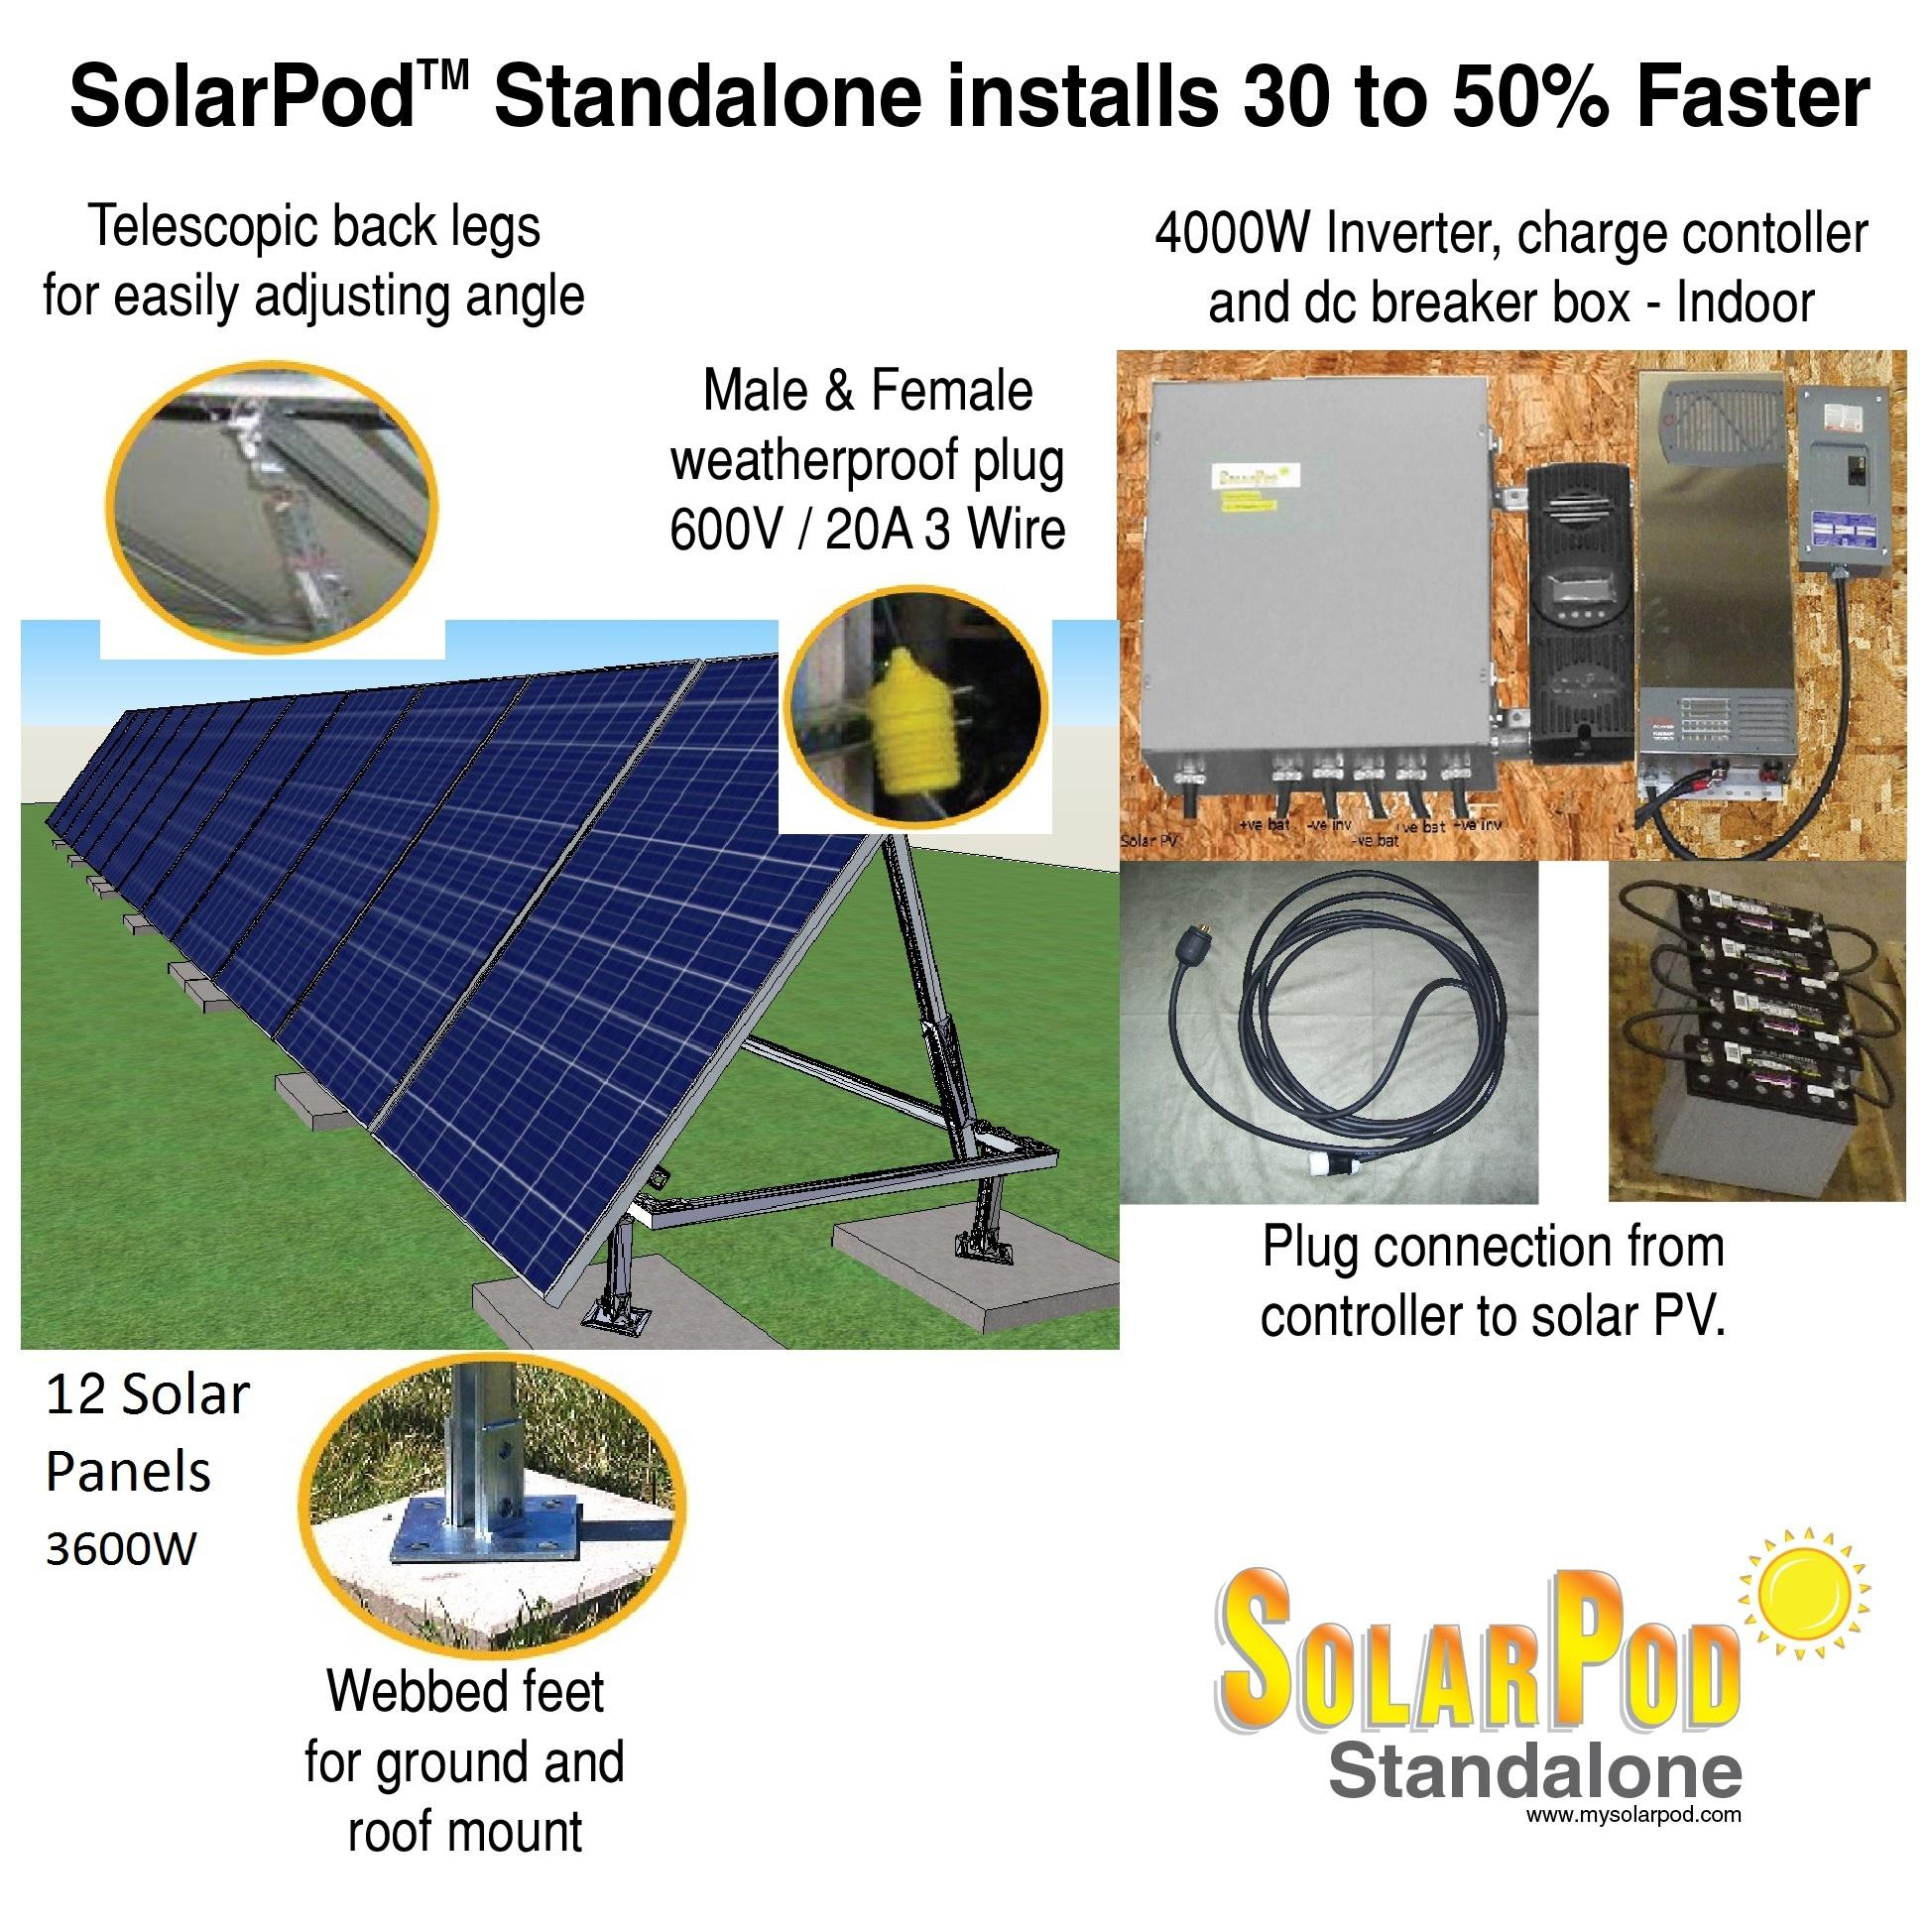 Model 1007 Solarpod Standalone 4kw On Off Grid Hybrid Series Wiring Pv Panels Solar System Inverter Charger